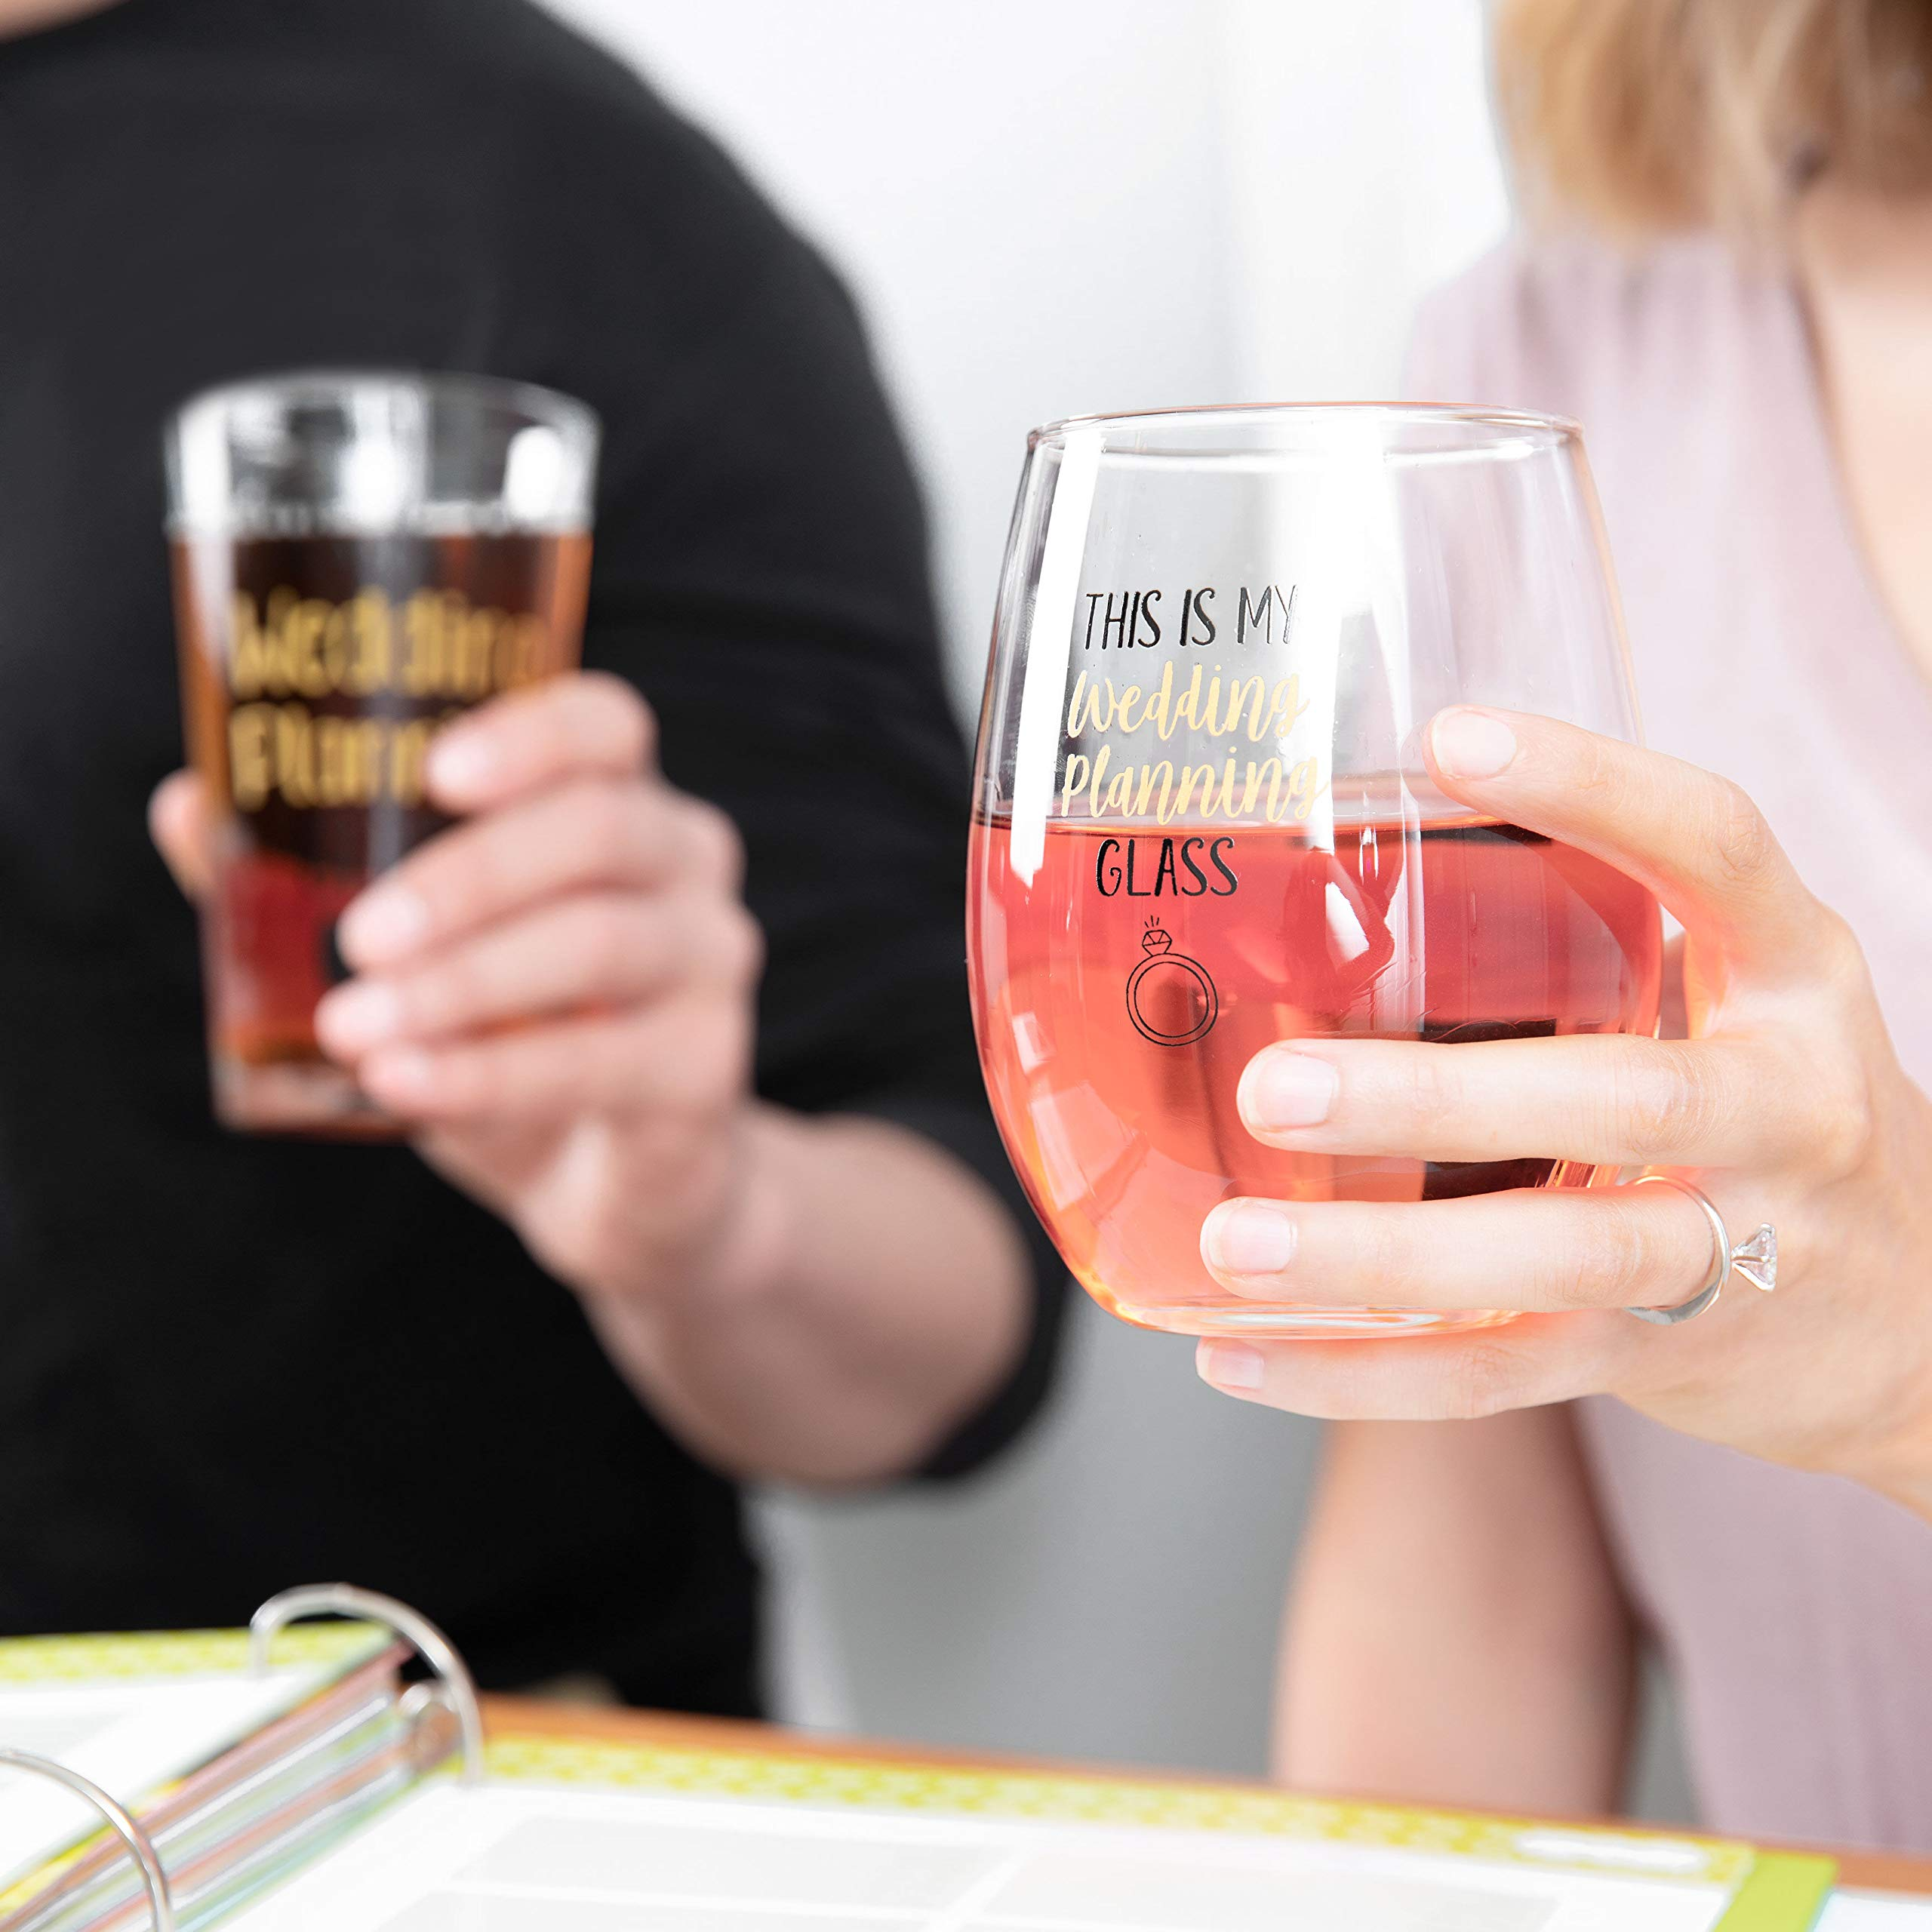 This Is My Wedding Planning Glass Set - Engagement Gift Set for the Couple - Mr & Mrs Gift - Bride and Groom To Be - 16 oz. Pint Glass, 21 oz. Wine Glass (Set of 2) by Gelid (Image #4)